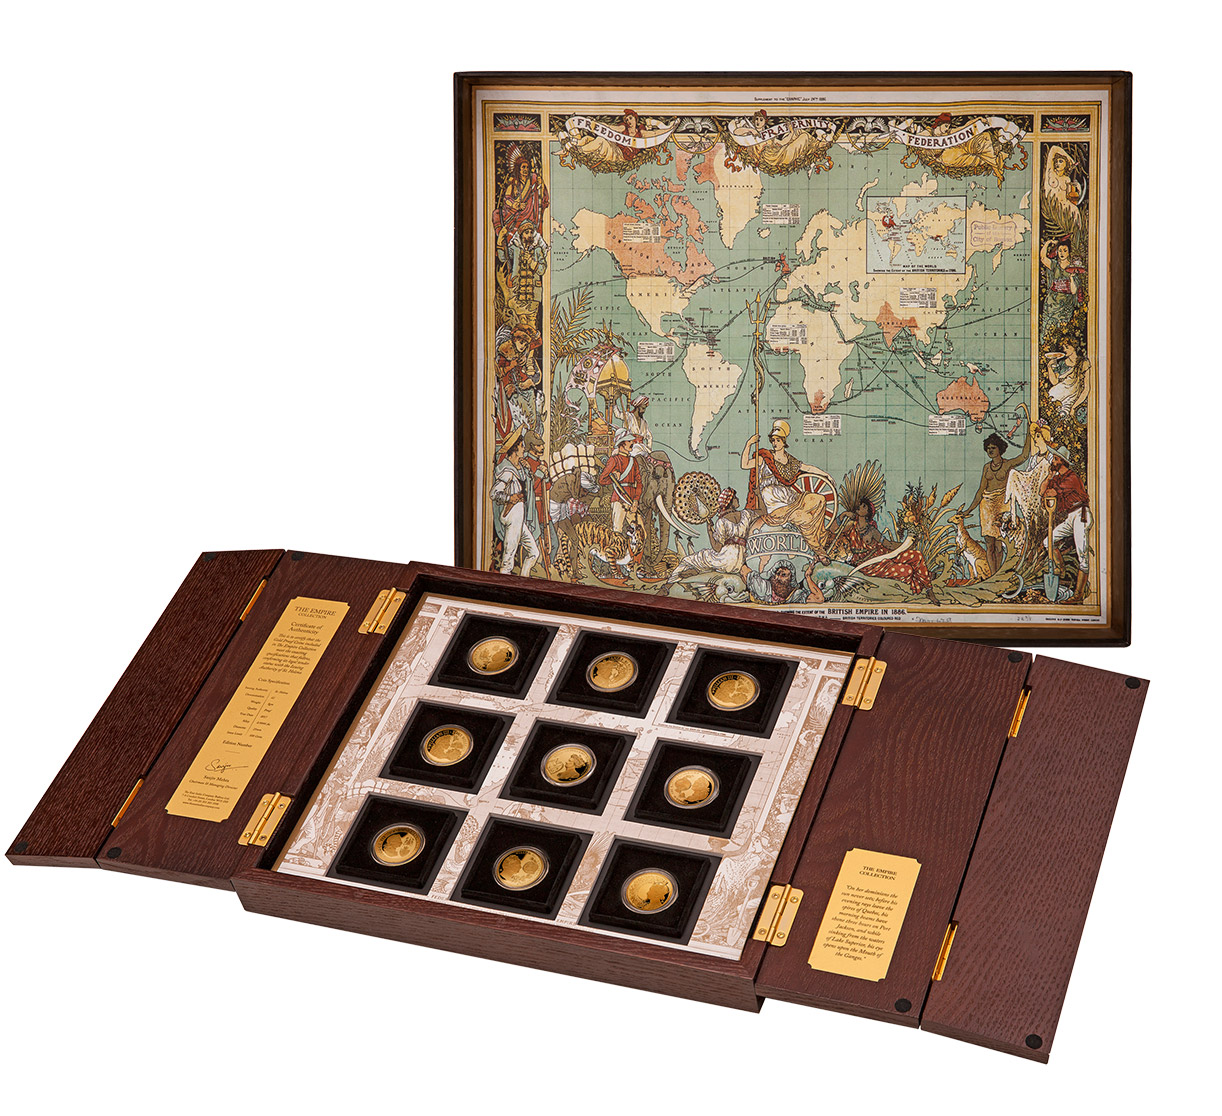 Empire Gold Proof Coin Set